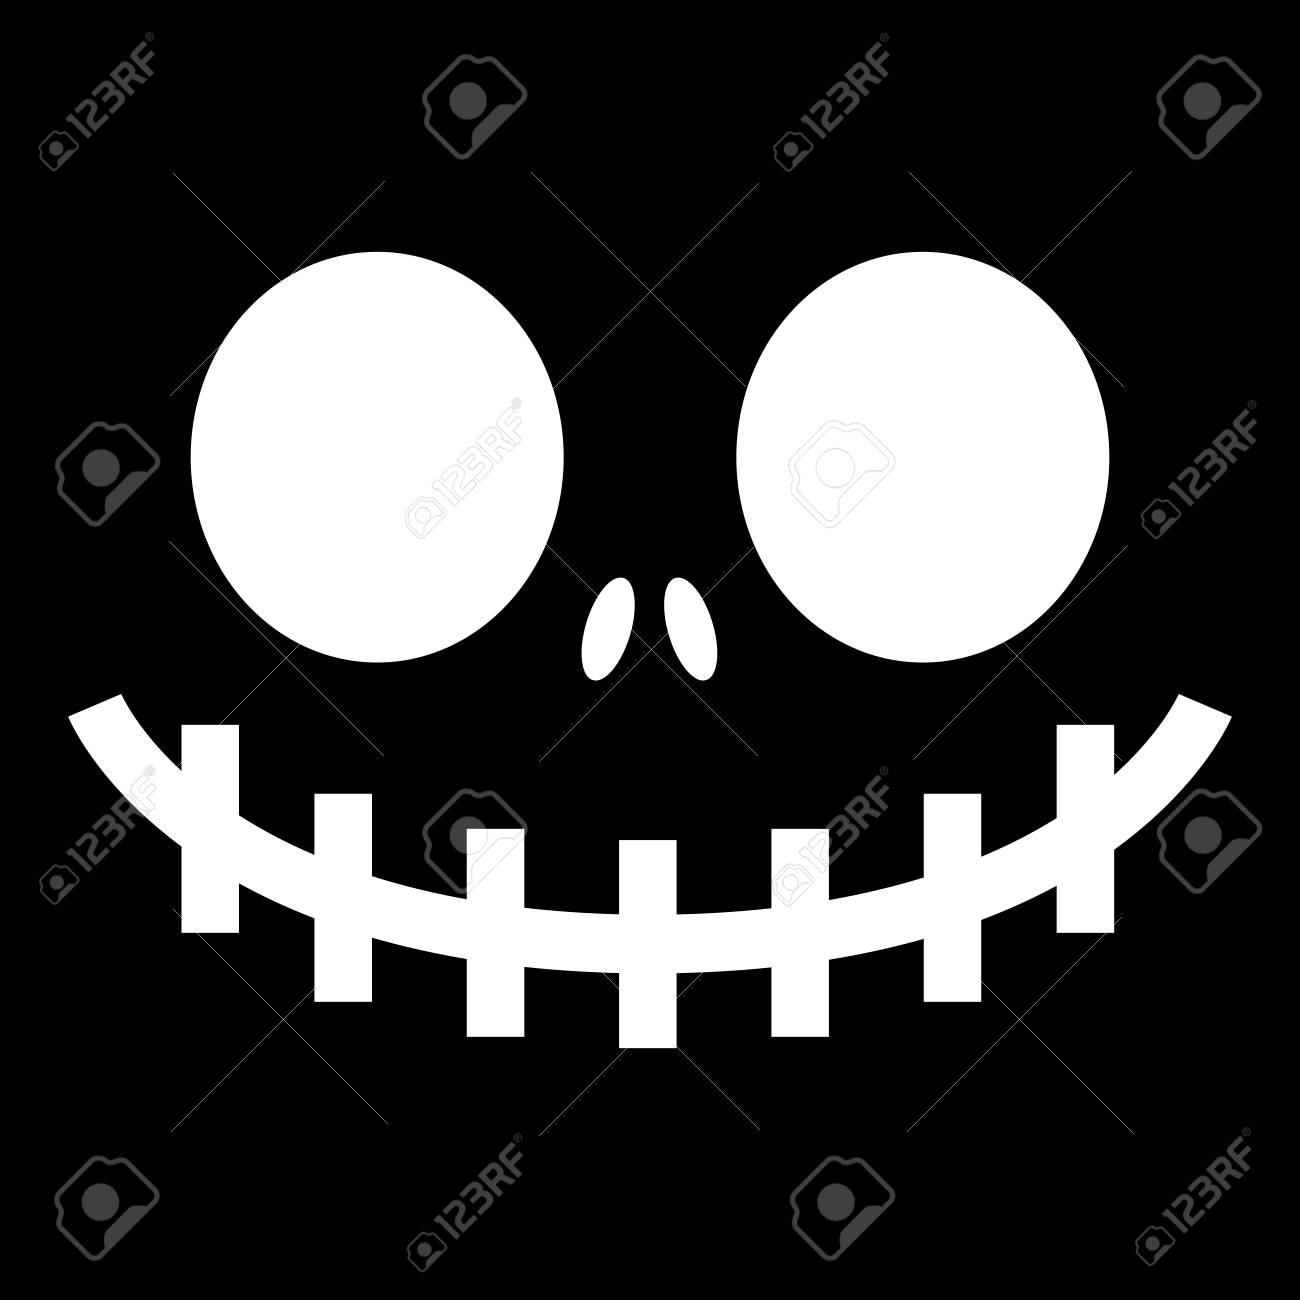 scary halloween ghost or pumpkin face vector design monster mouth icon with spooky eyes